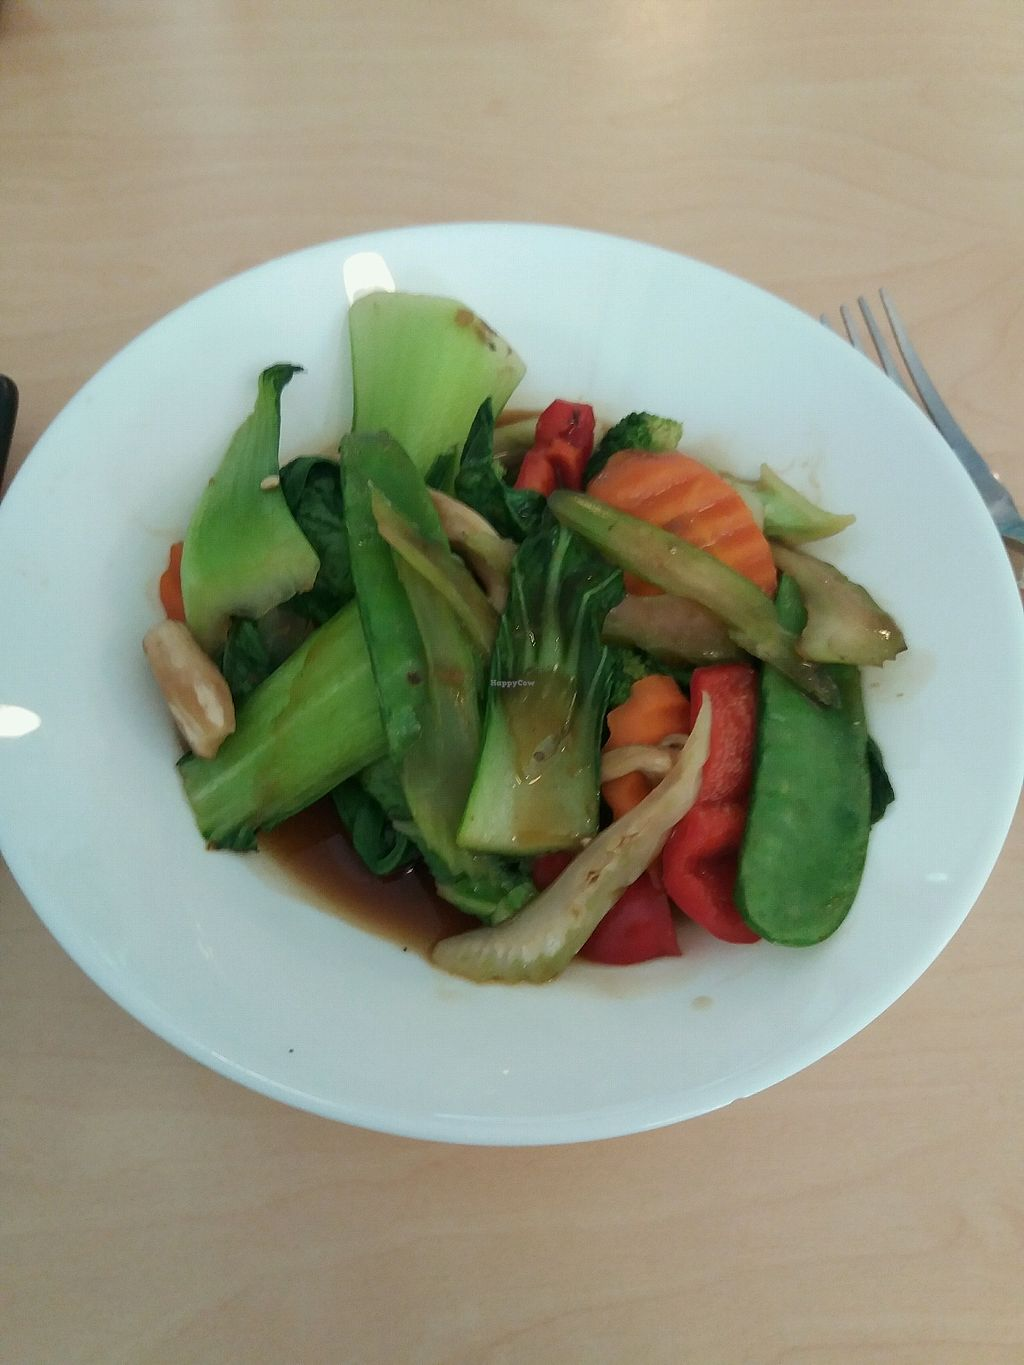 "Photo of Vina Vegan  by <a href=""/members/profile/veganvirtues"">veganvirtues</a> <br/>mixed veggies <br/> December 23, 2017  - <a href='/contact/abuse/image/17714/338263'>Report</a>"